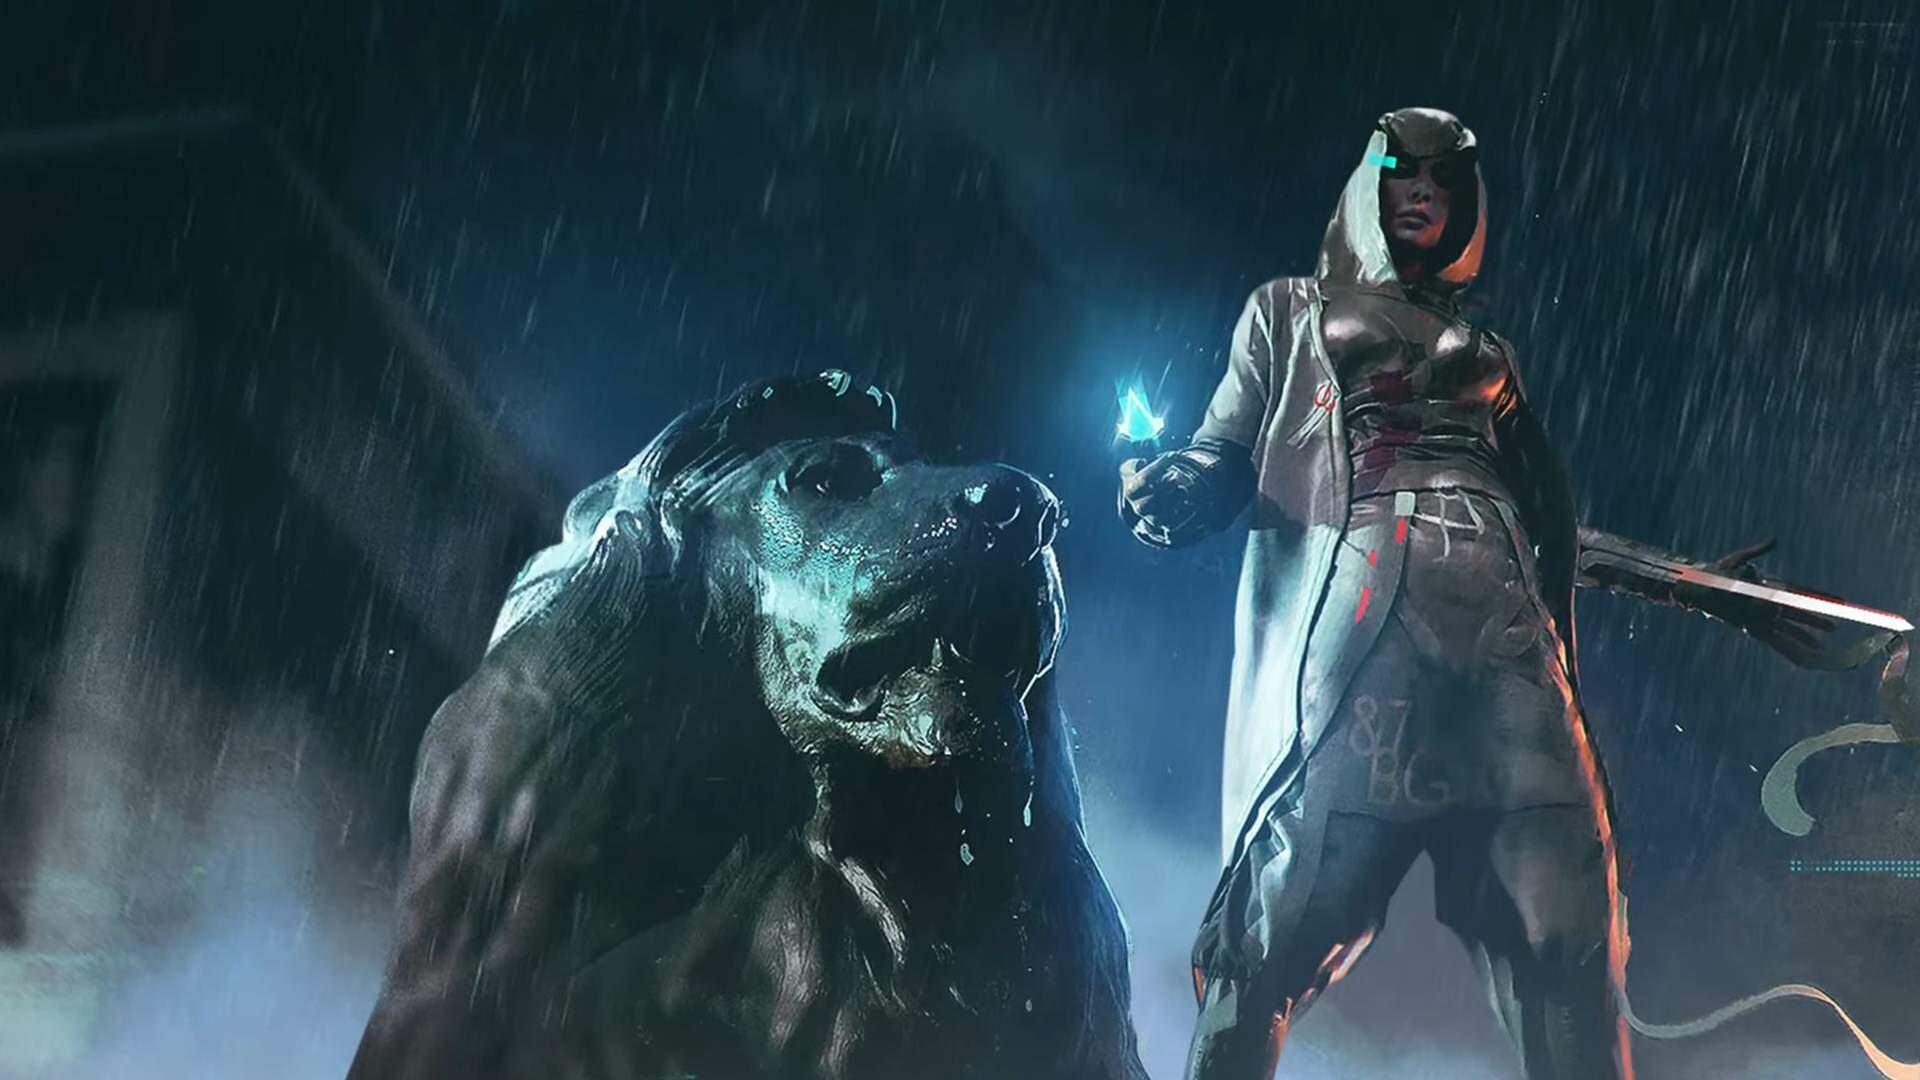 Watch Dogs: Legion's Post-Launch Plans Include Online Co-Op and a New Assassin